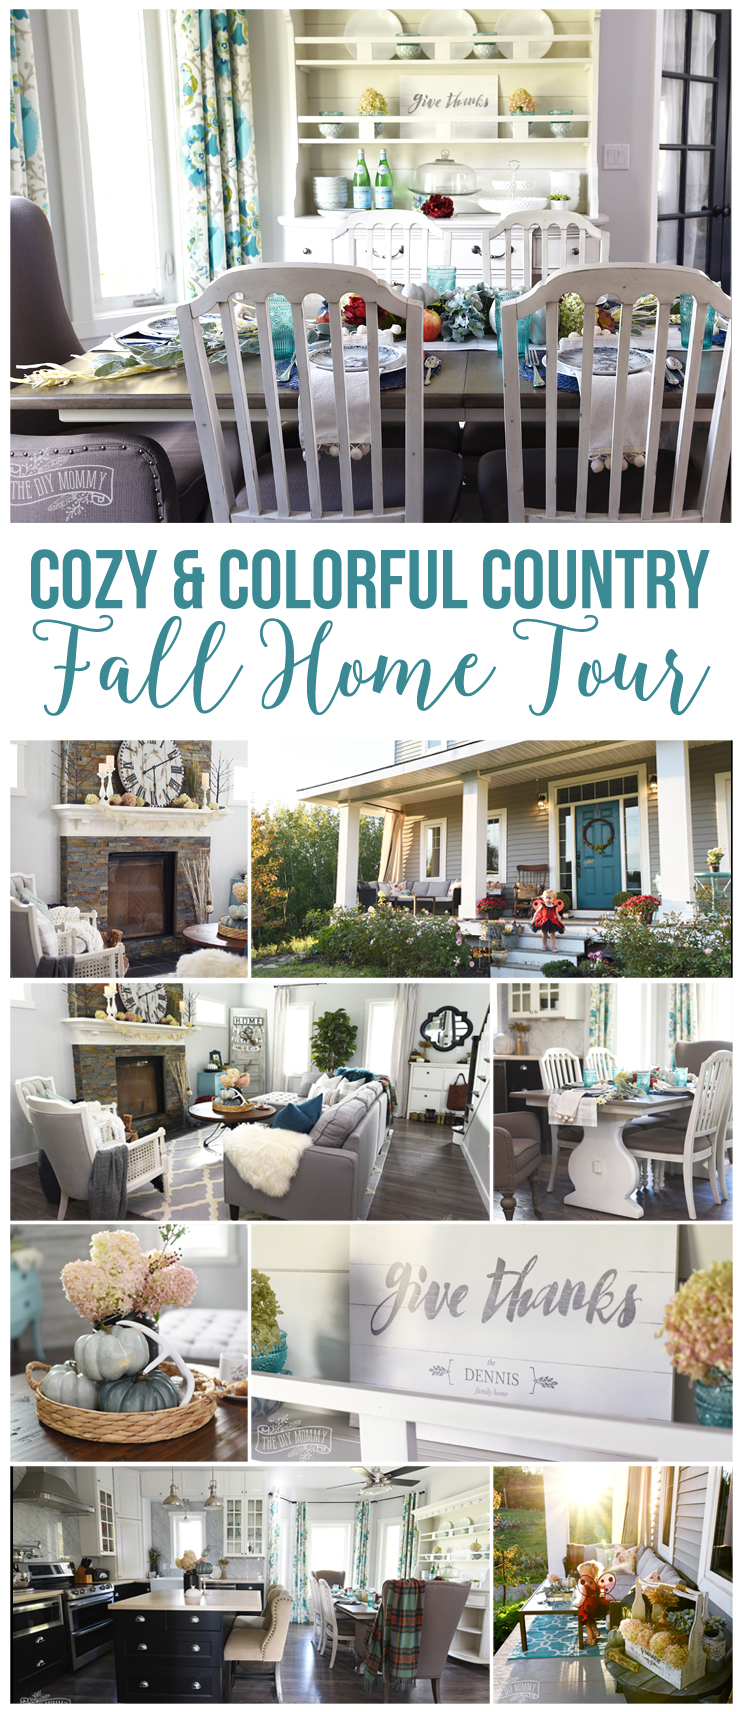 Colorful country boho Fall home tour